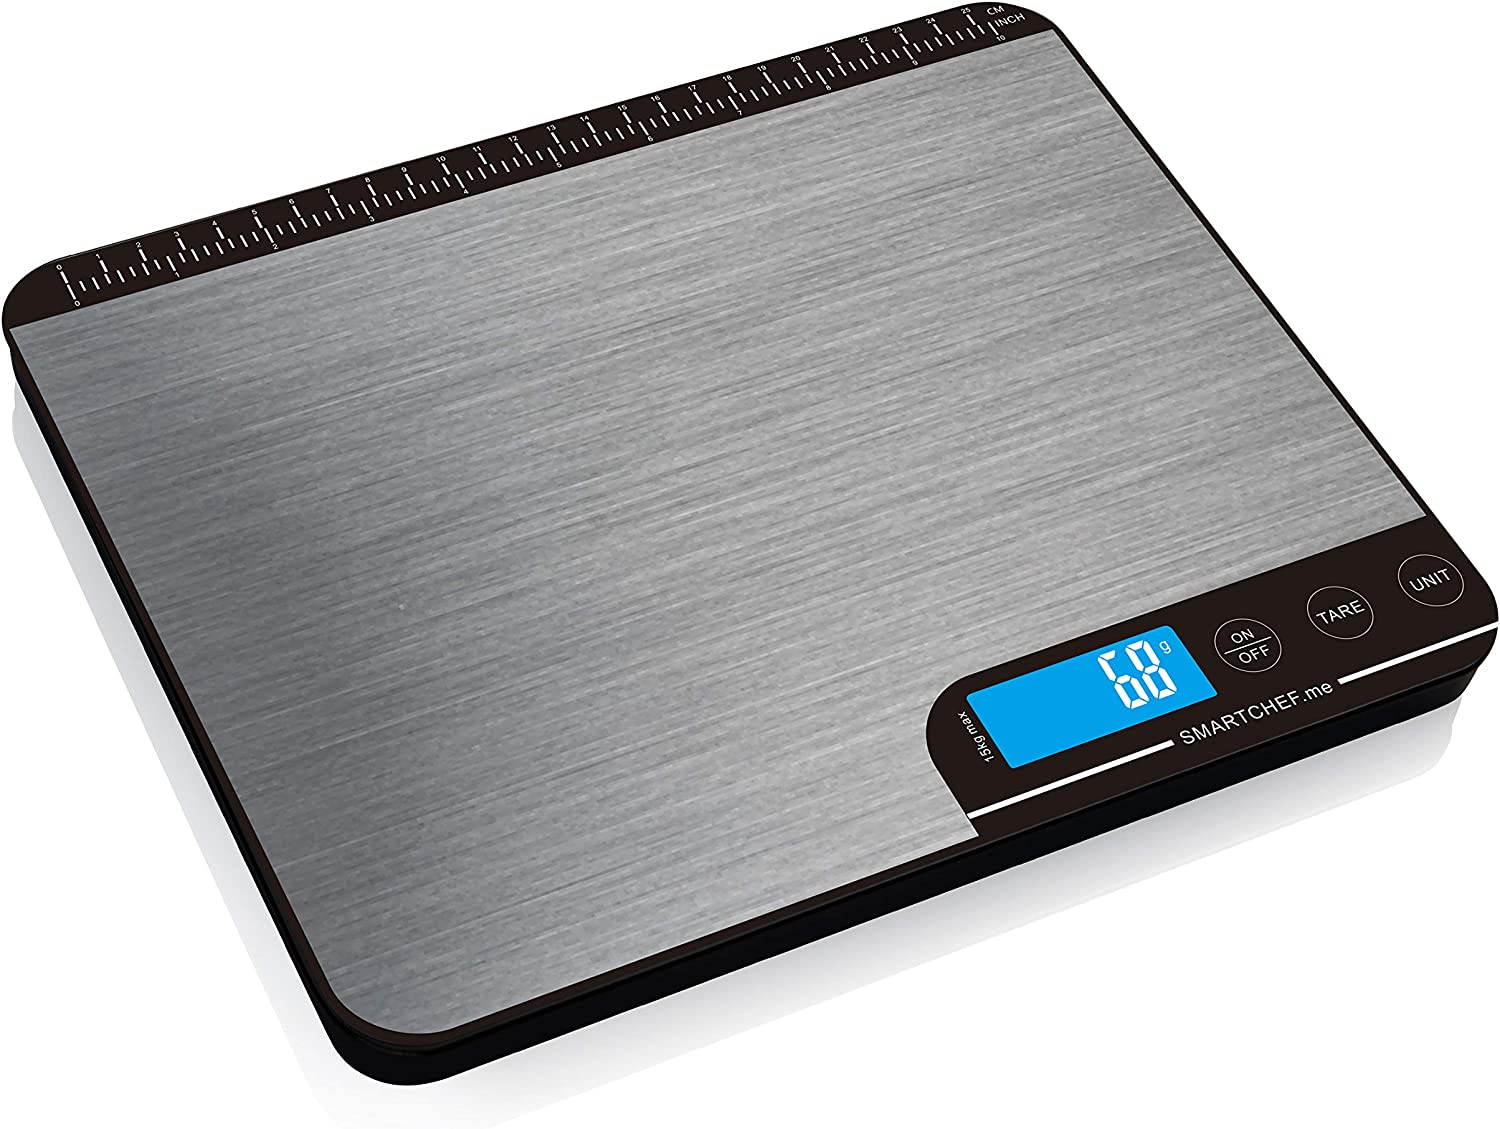 reflex 15kg/33lb digital smart food kitchen baking postal Scale, grams and ounces, waterproof, USB rechargeable, wireless, accurate, metal stainless steel surface, nutritional keto calculator, wireless, free mobile apps